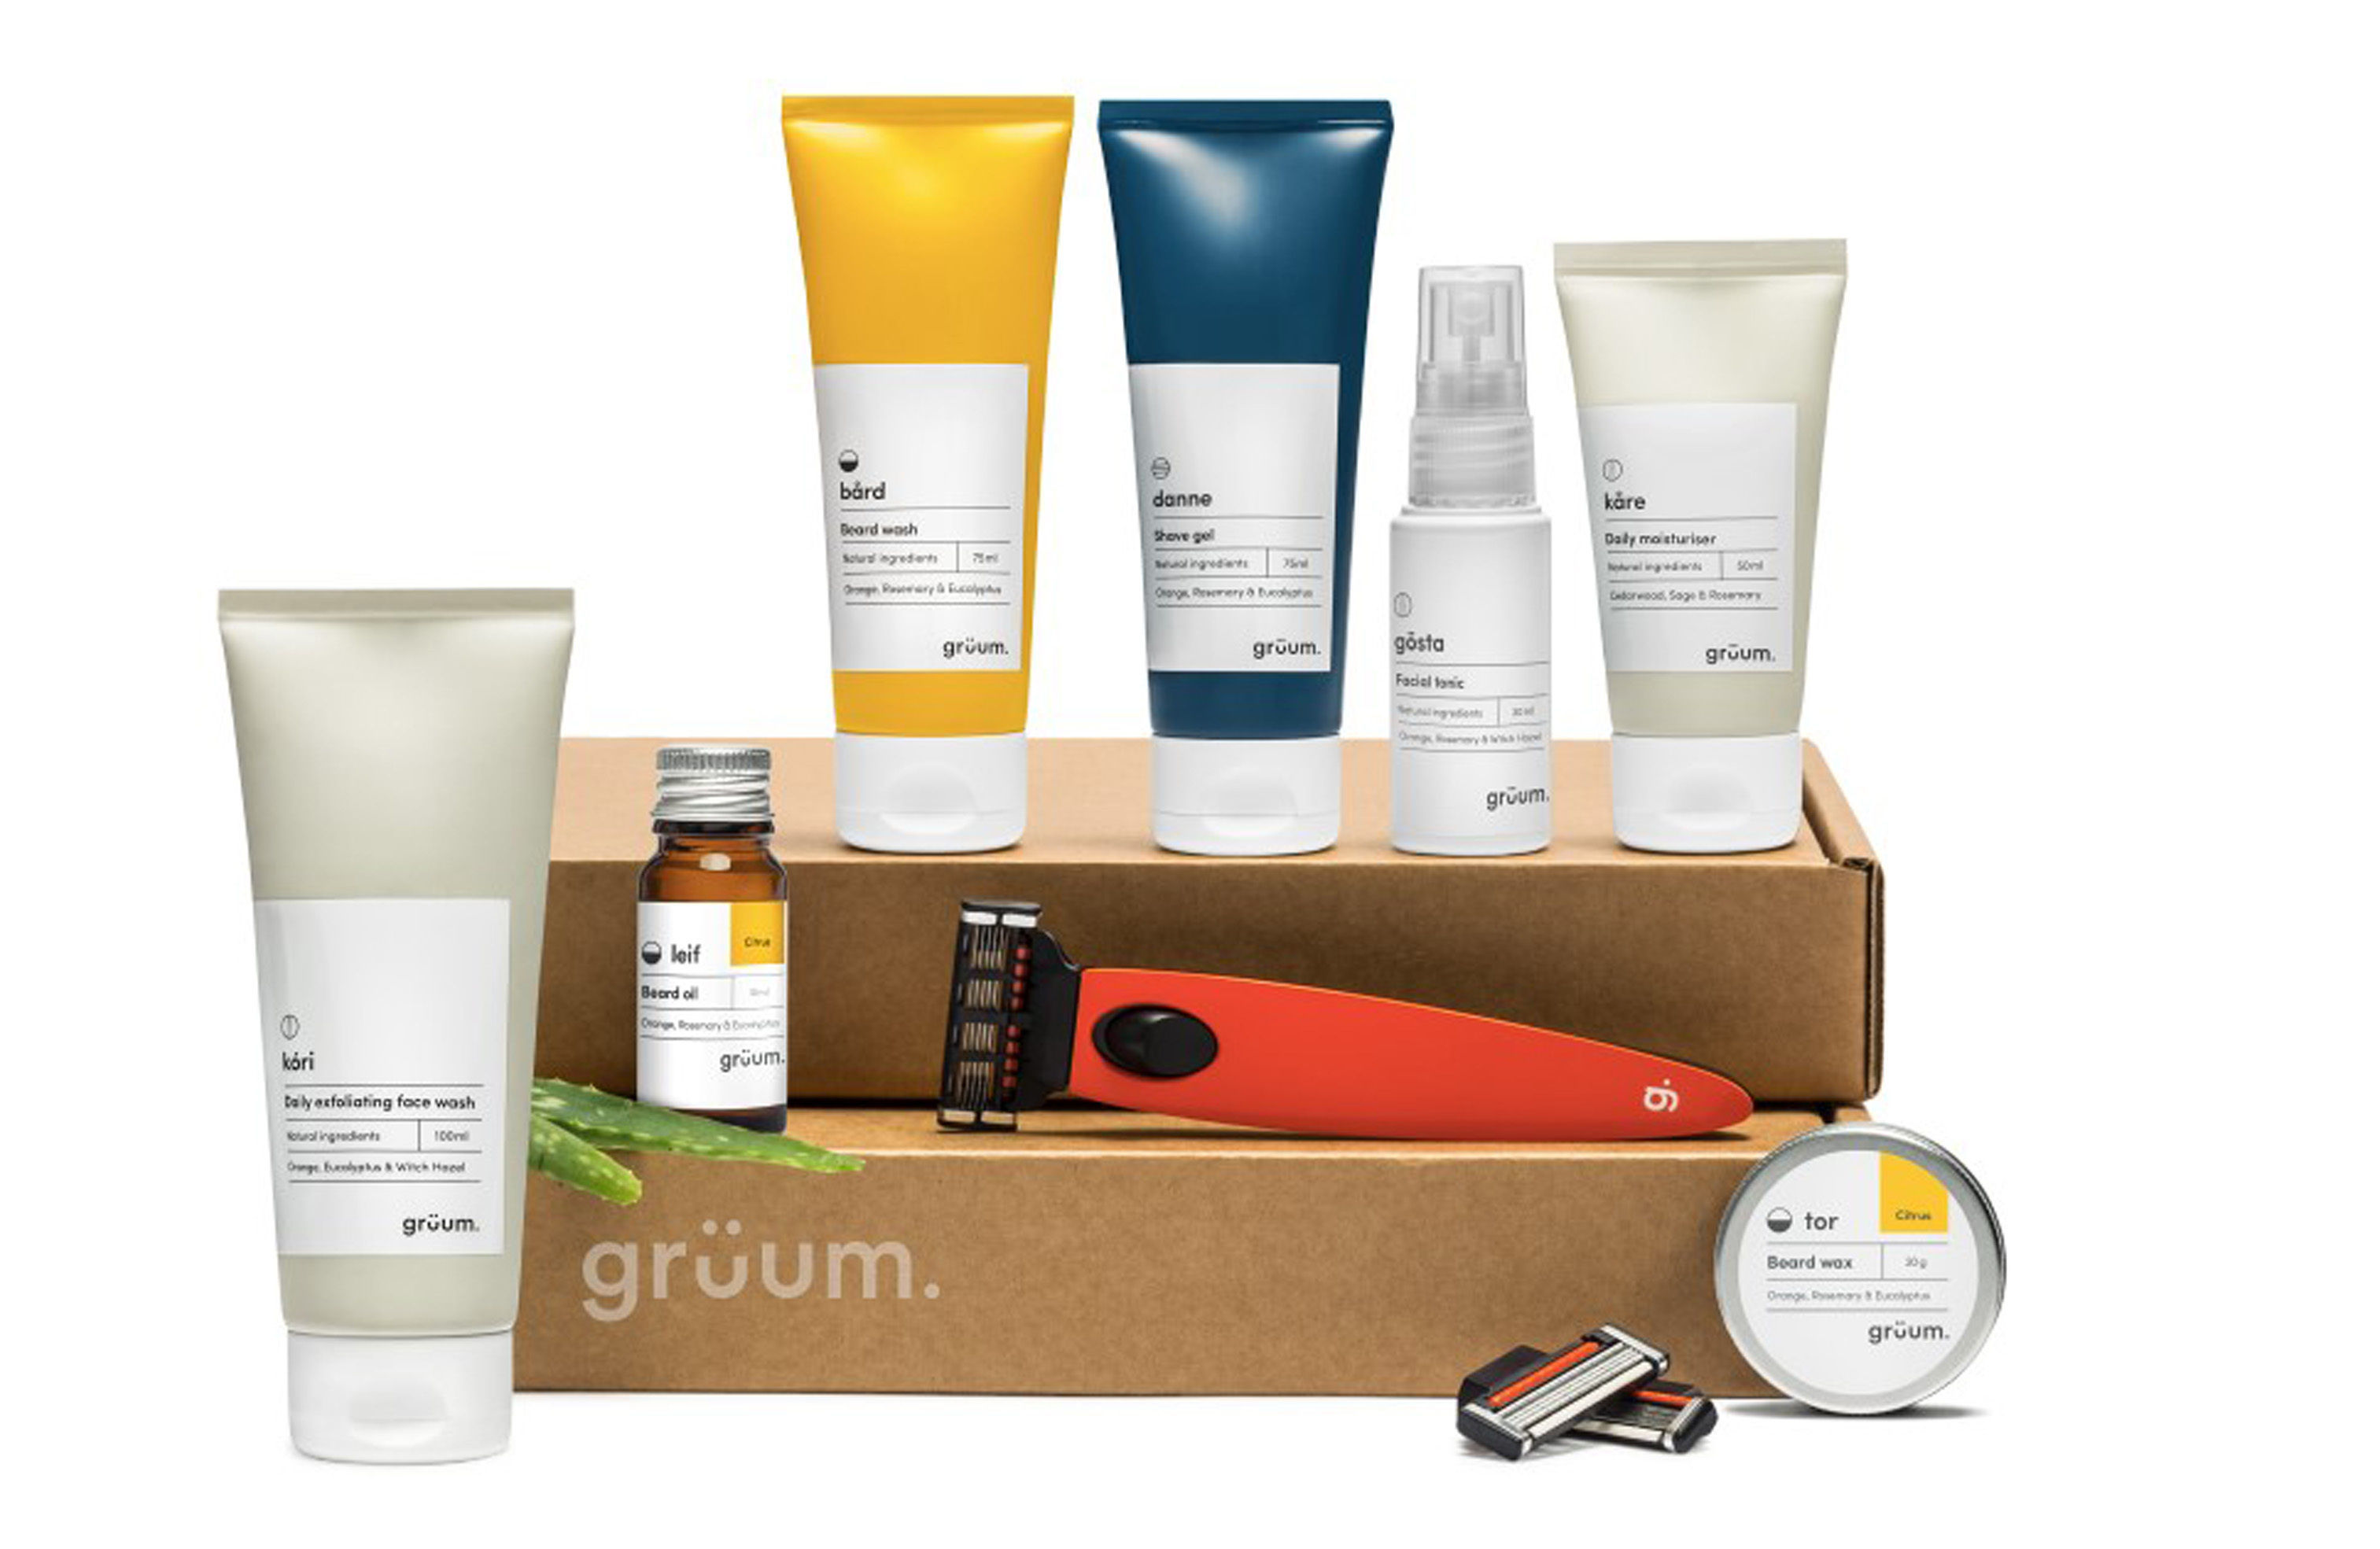 Gruum subscription service, available from Gruum.com. Picture credit: PA Photo/Handout.